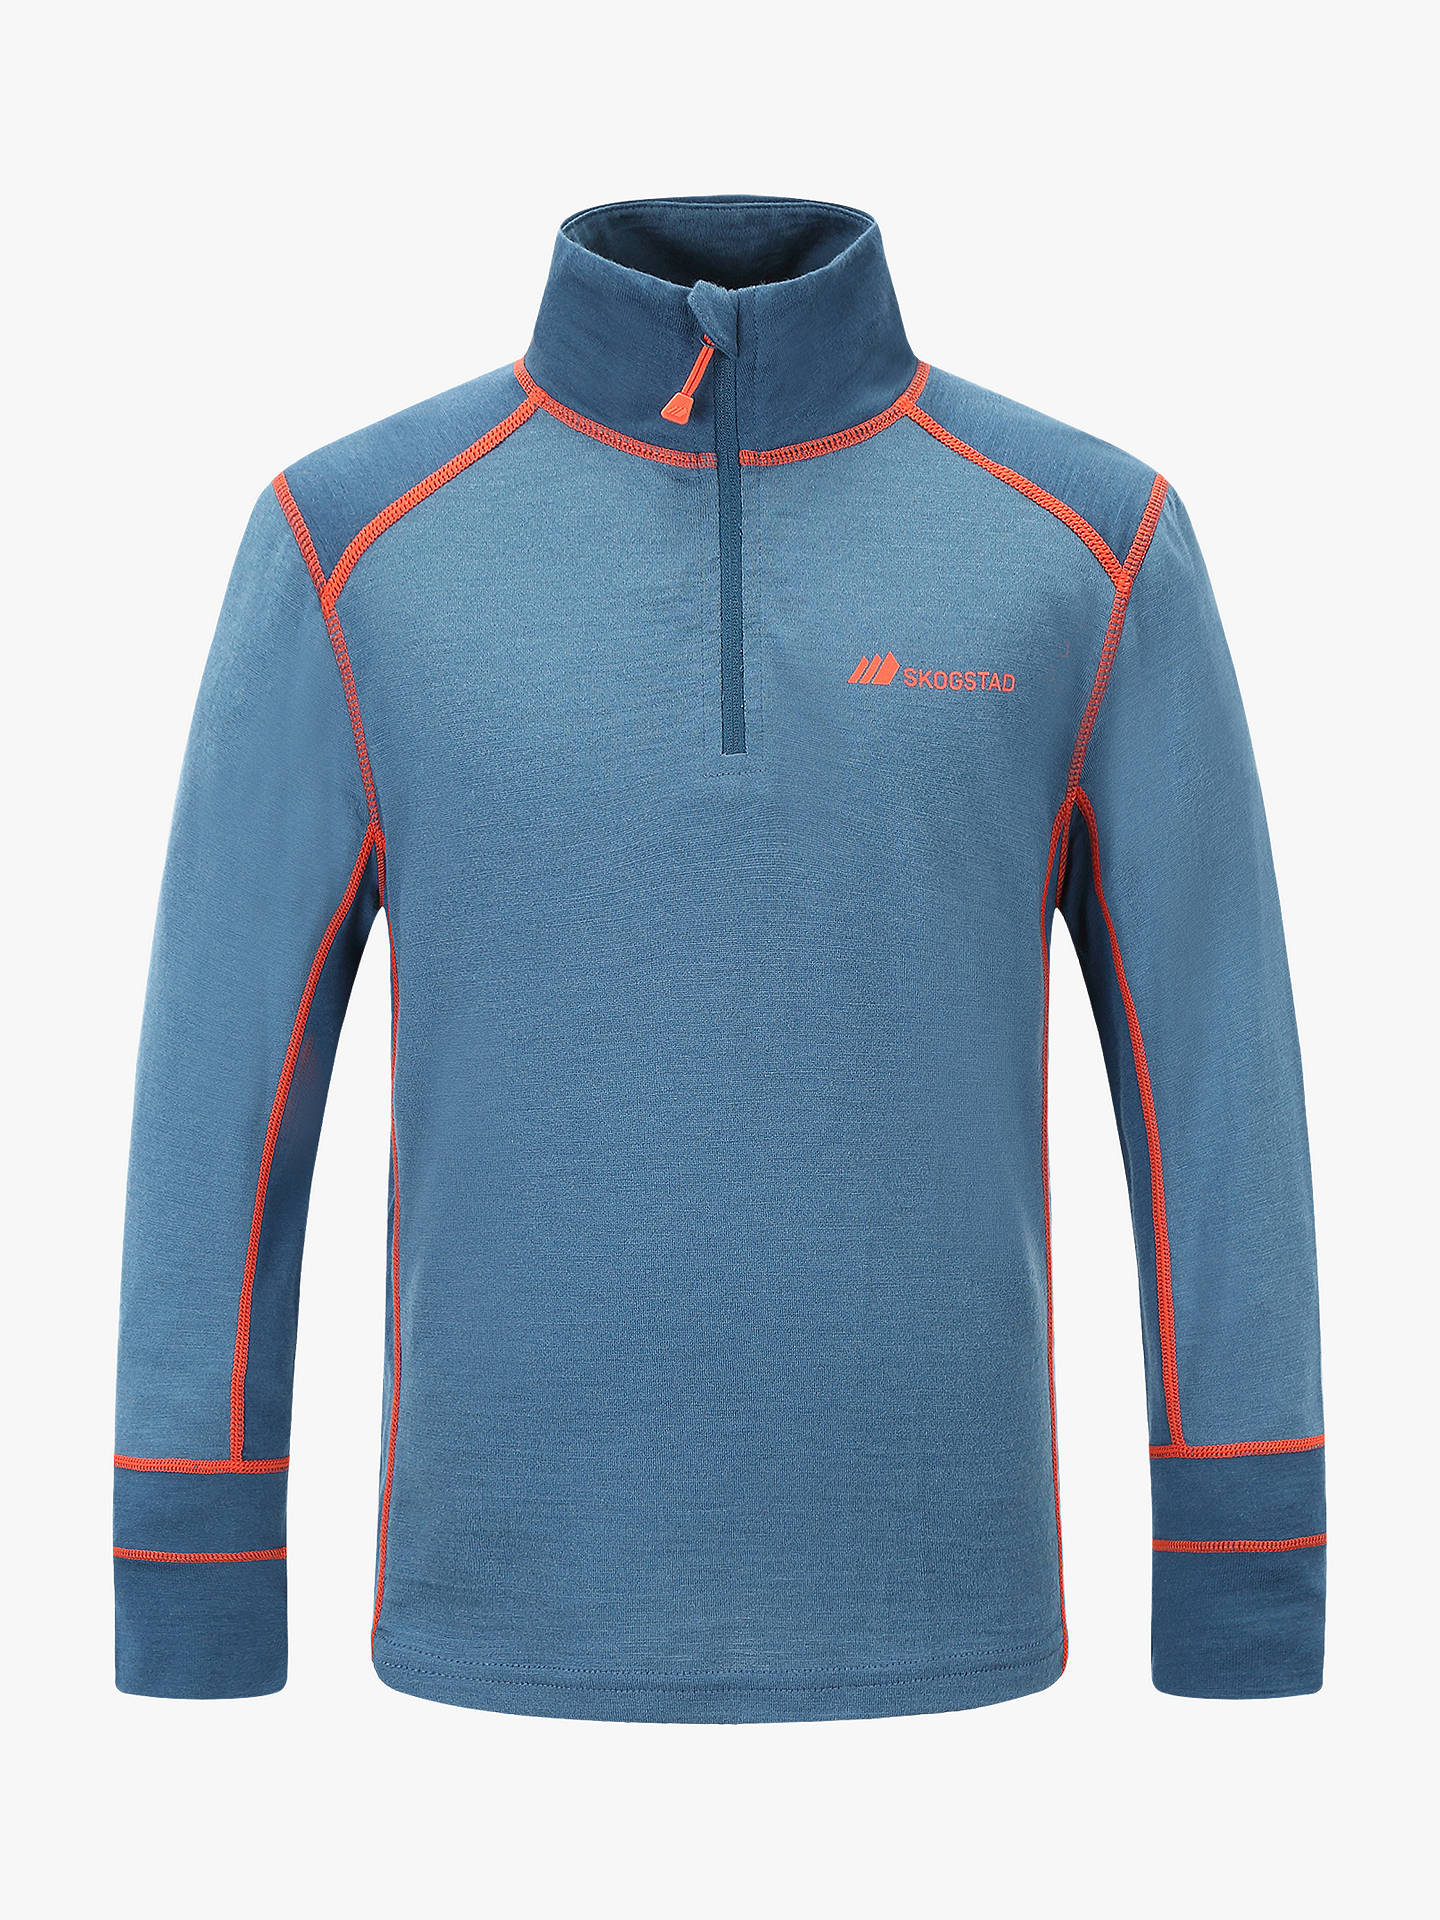 Buy Skogstad Boys' Merino Thermal Top, Blue Teal, 12 years Online at johnlewis.com